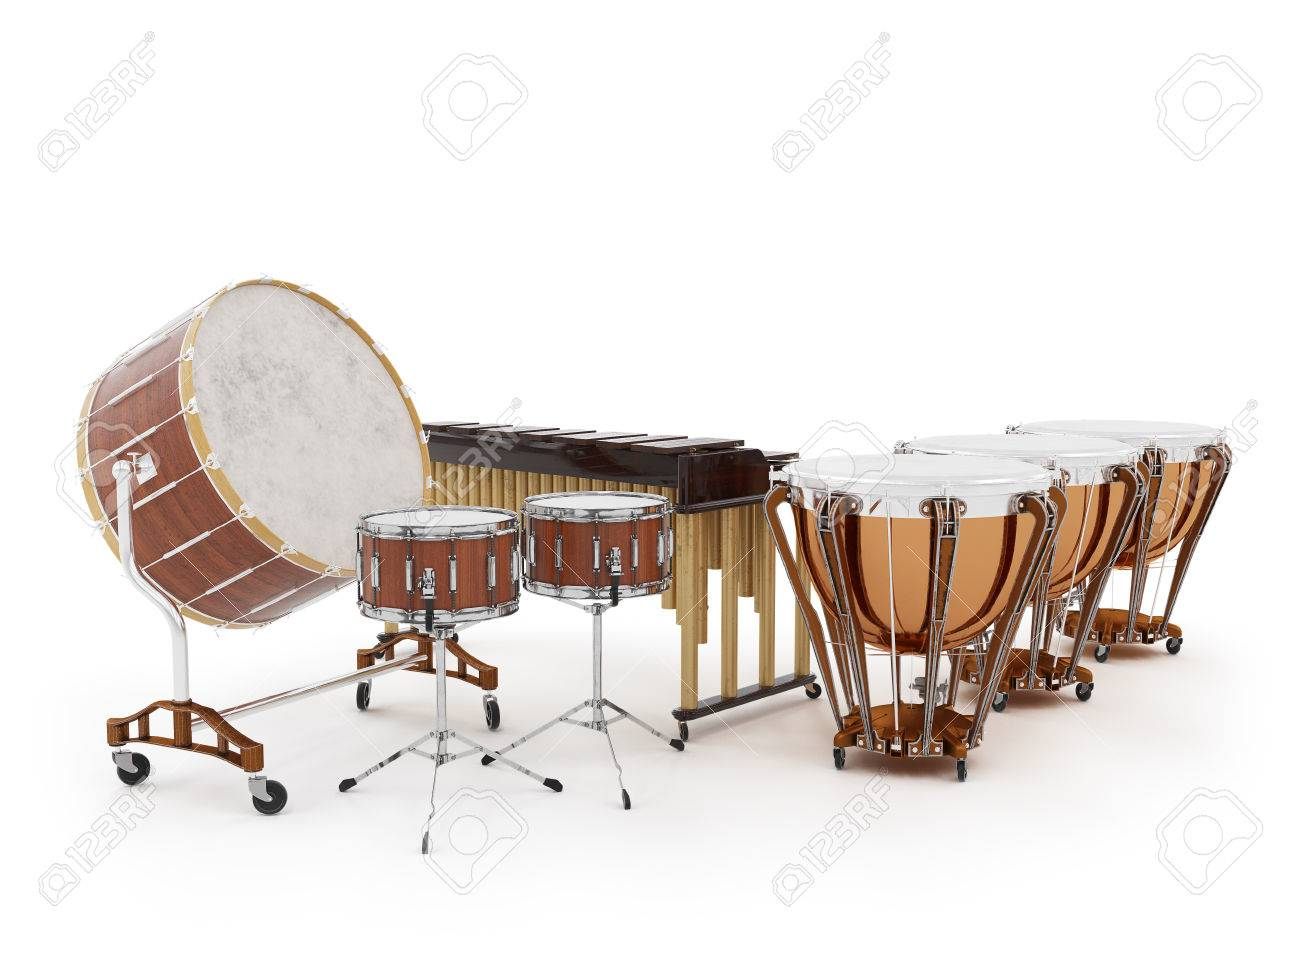 Orchestra drums isolated on white  background 3D rendering Standard-Bild - 58194411